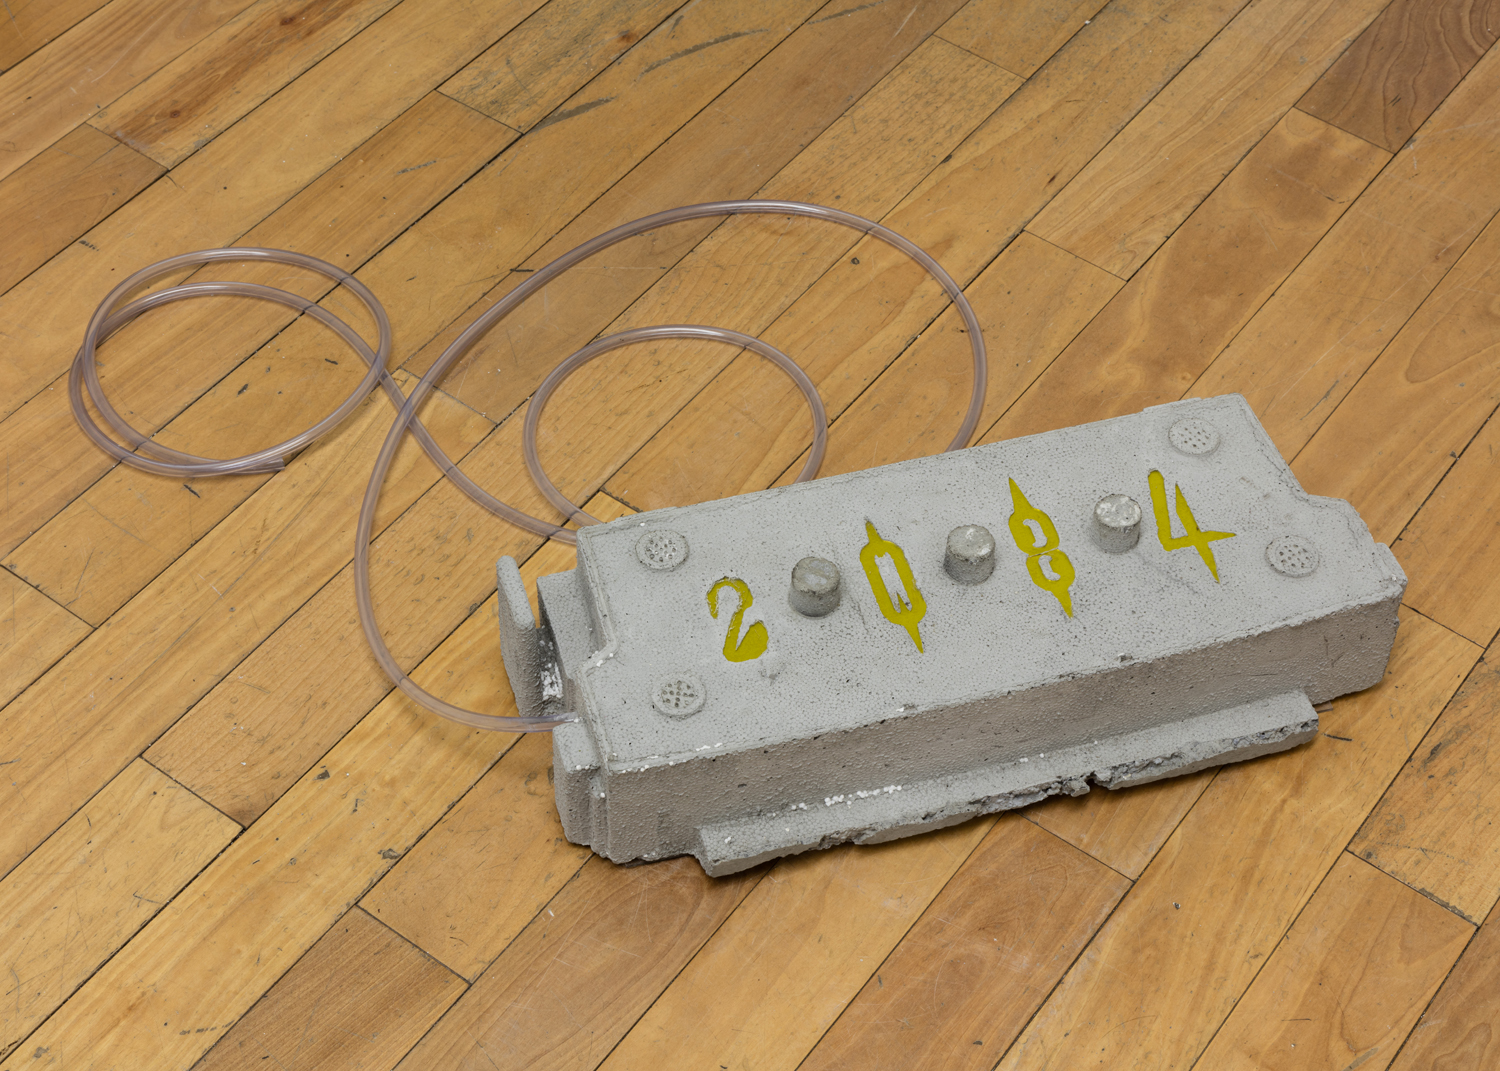 Phoebe Berglund in collaboration with Arkadiy Ryabin,  2084,  2019. Concrete, rebar, plexiglass, vinyl tubing. 5 x 22 x 8 inches.